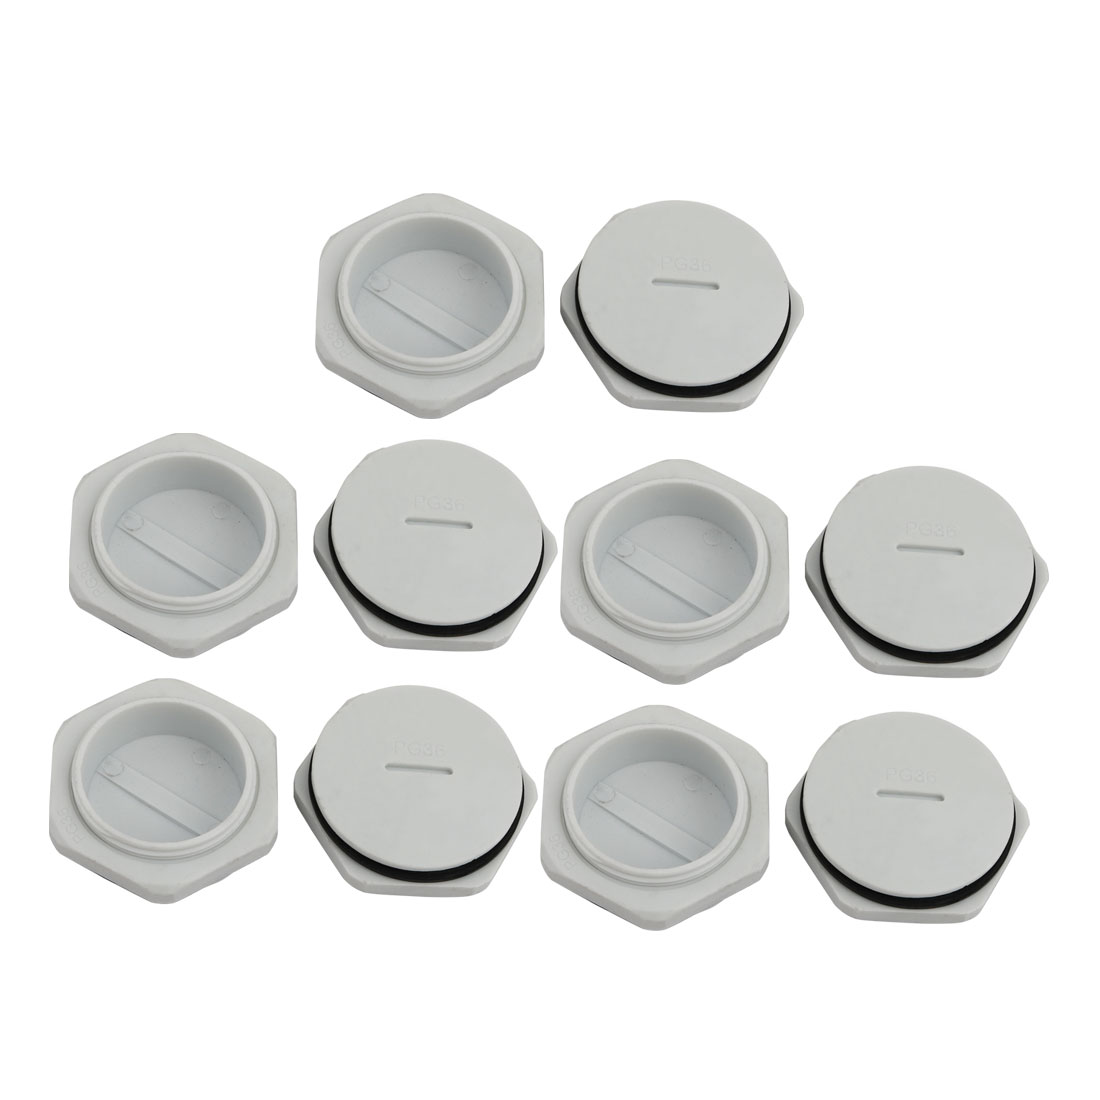 10pcs GLW-PG36 Nylon Threaded Cable Gland Cap Round Screw-in Cover Gray w Washer